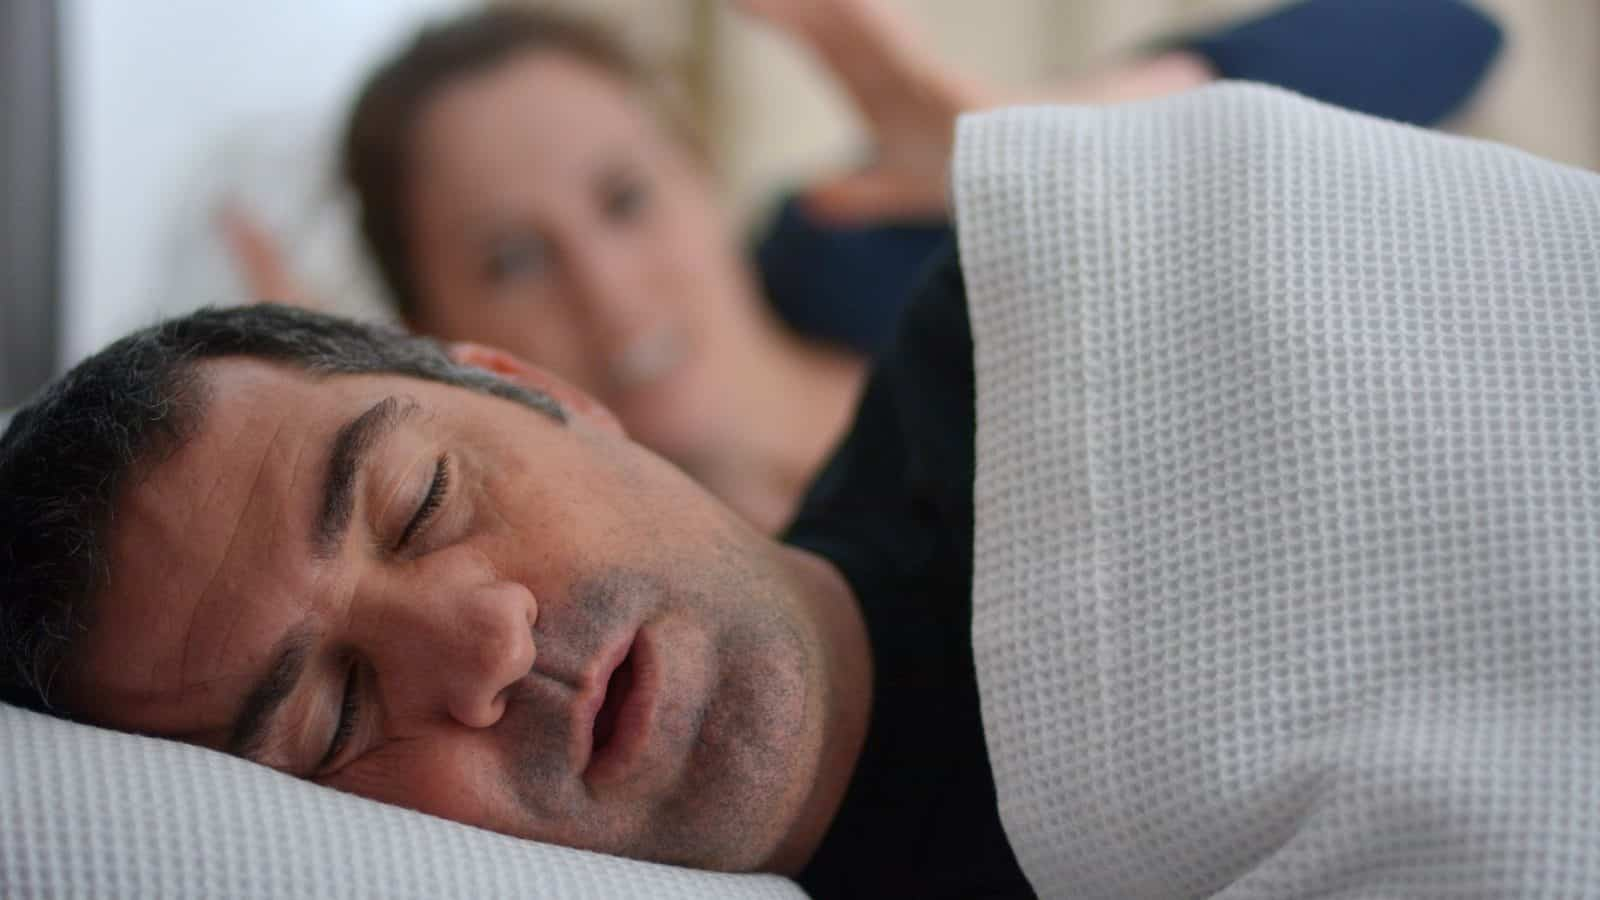 3 best anti snoring pillows in 2021